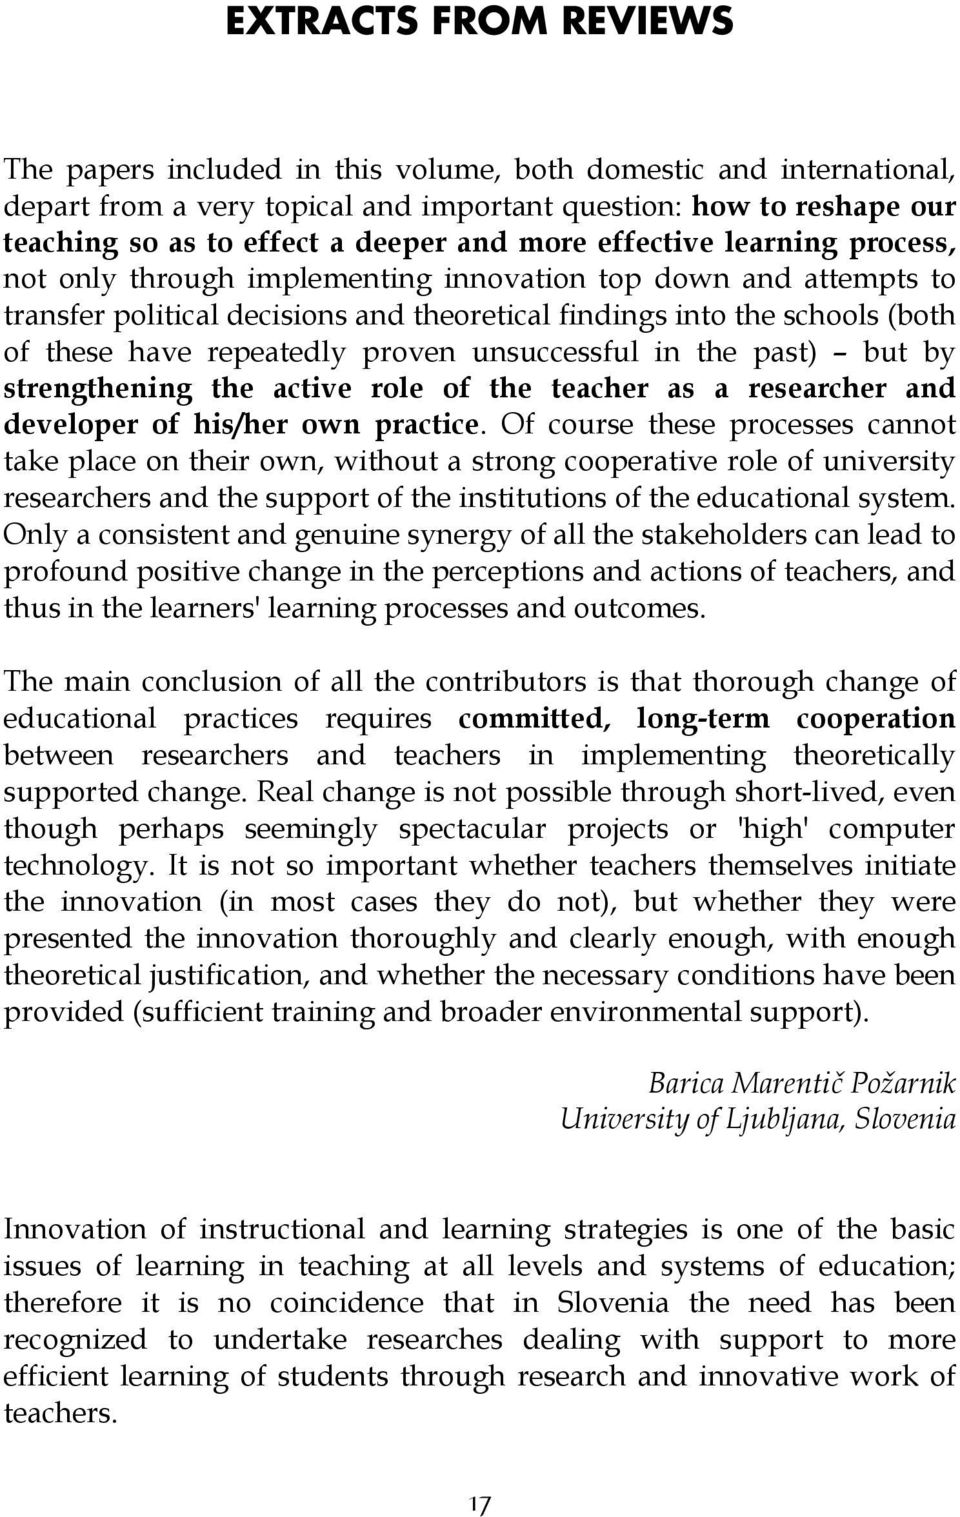 repeatedly proven unsuccessful in the past) but by strengthening the active role of the teacher as a researcher and developer of his/her own practice.